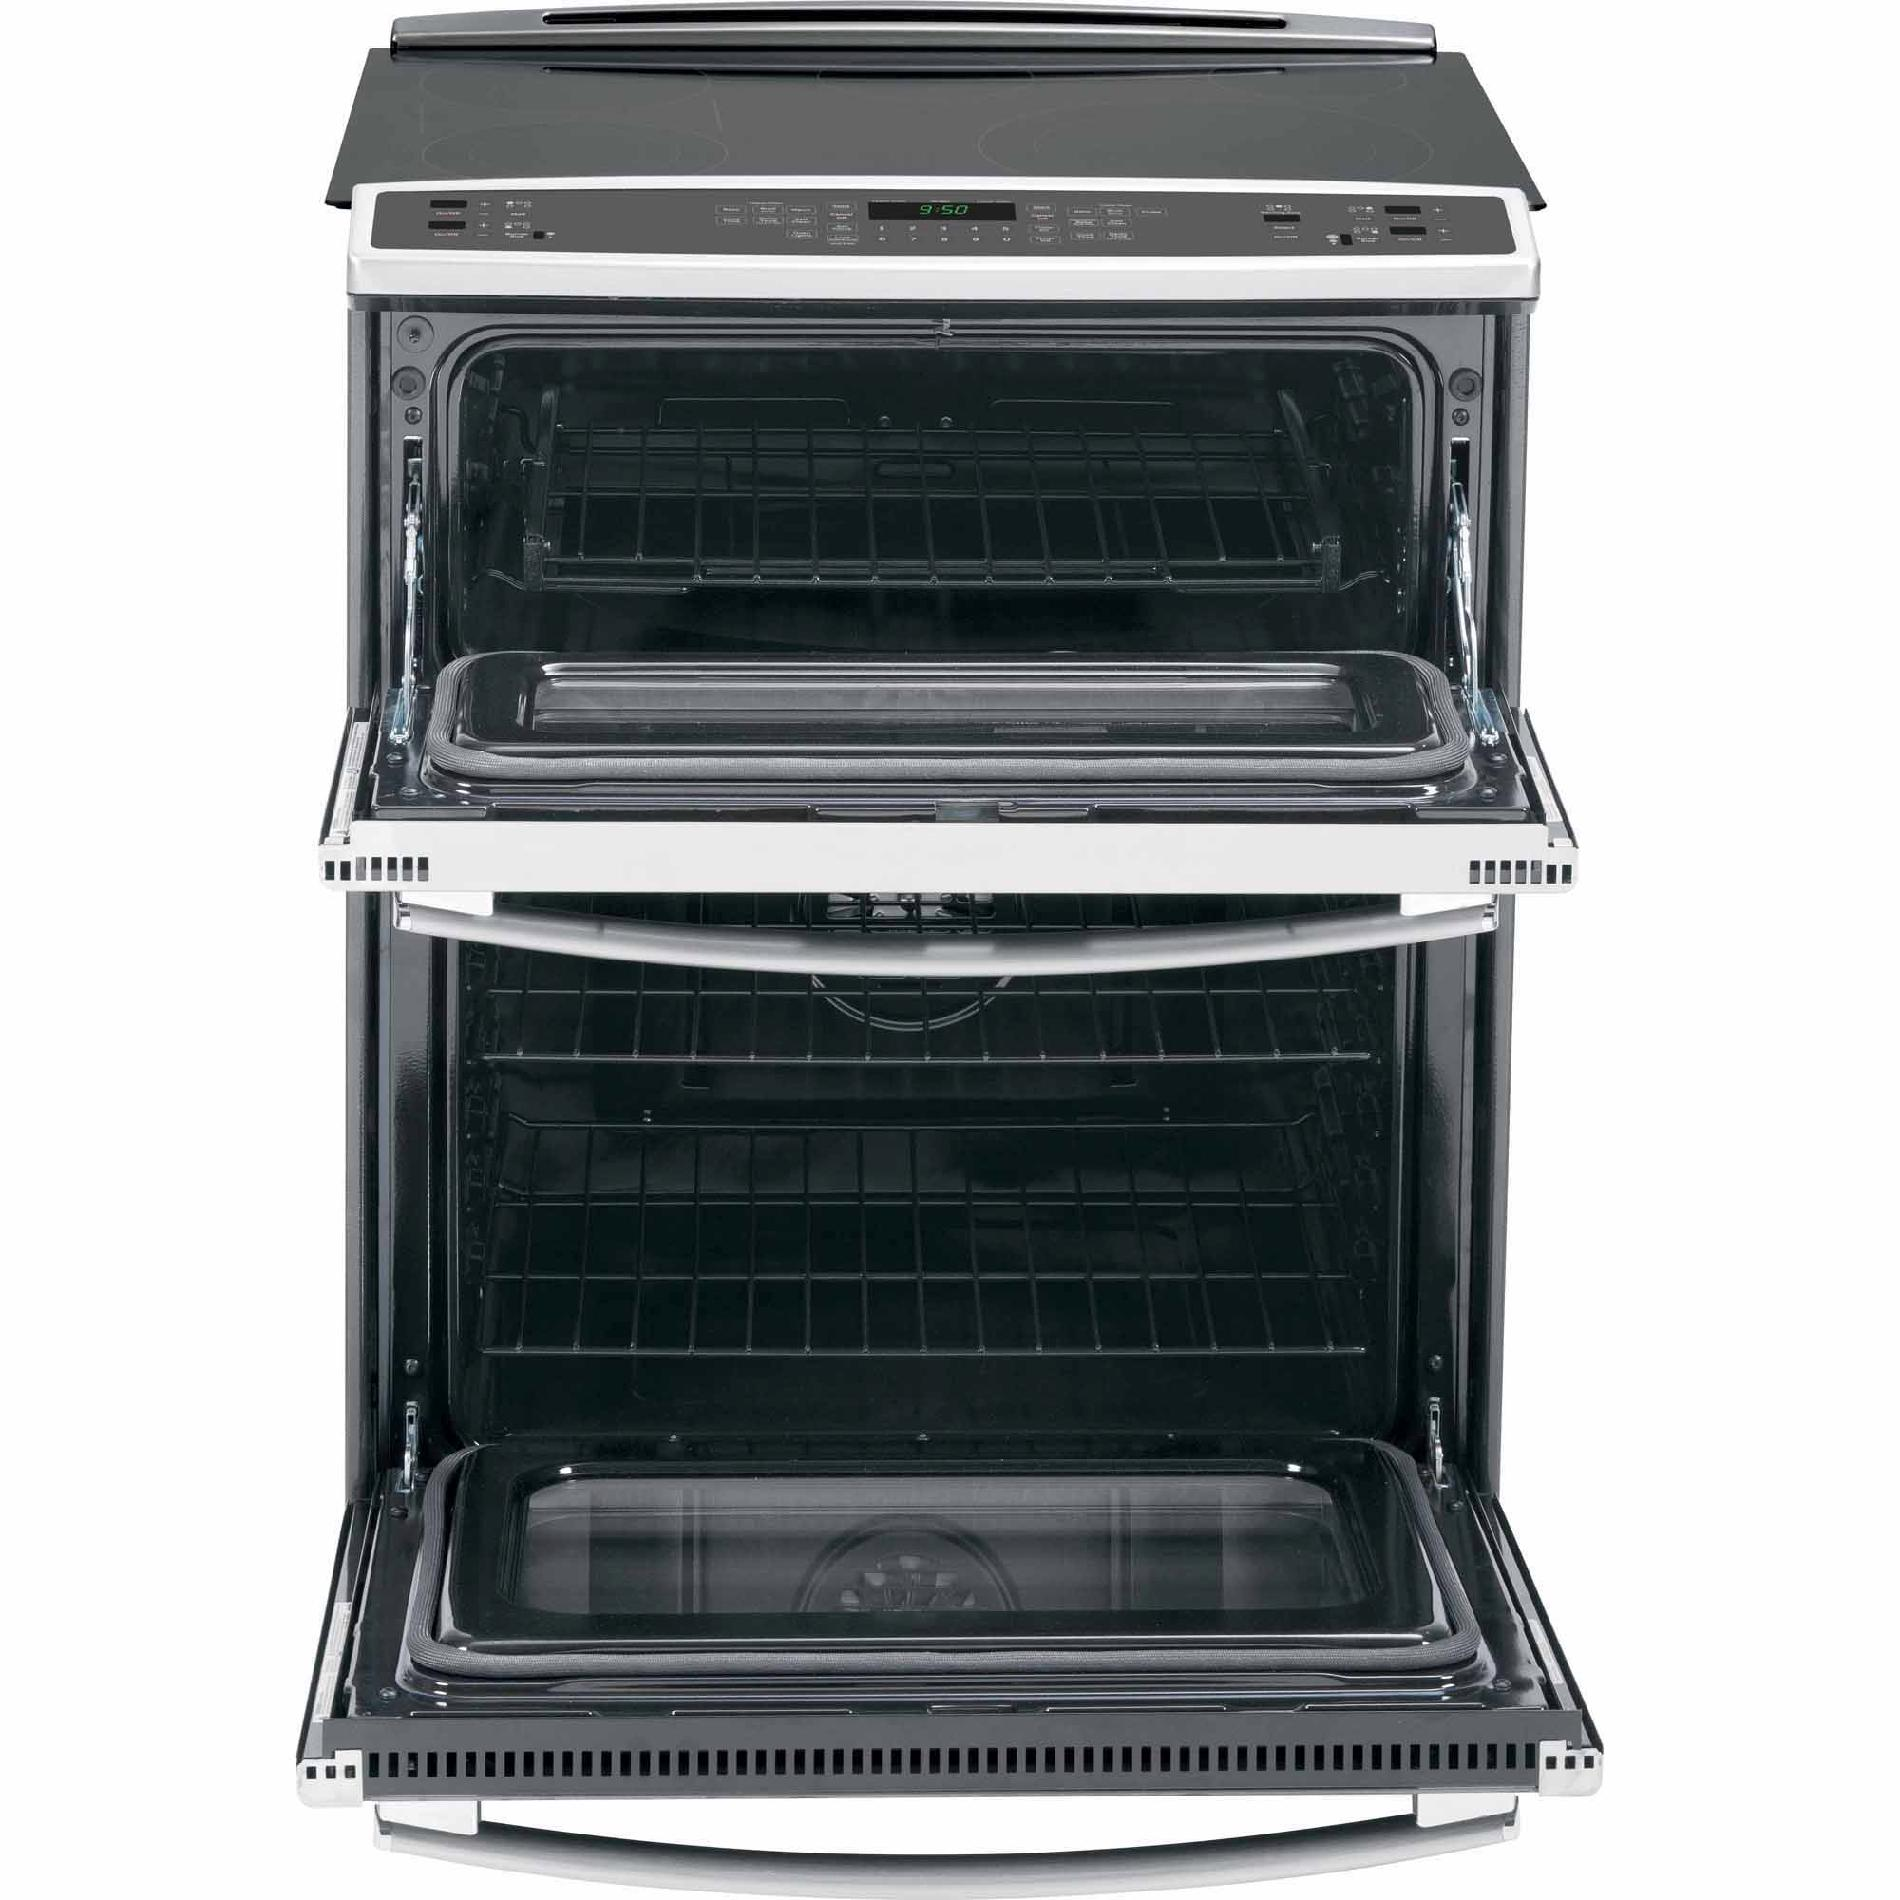 GE Profile PS950SFSS 4.4 cu. ft. Slide-In Electric Range w/ Convection Double Oven - Stainless Steel